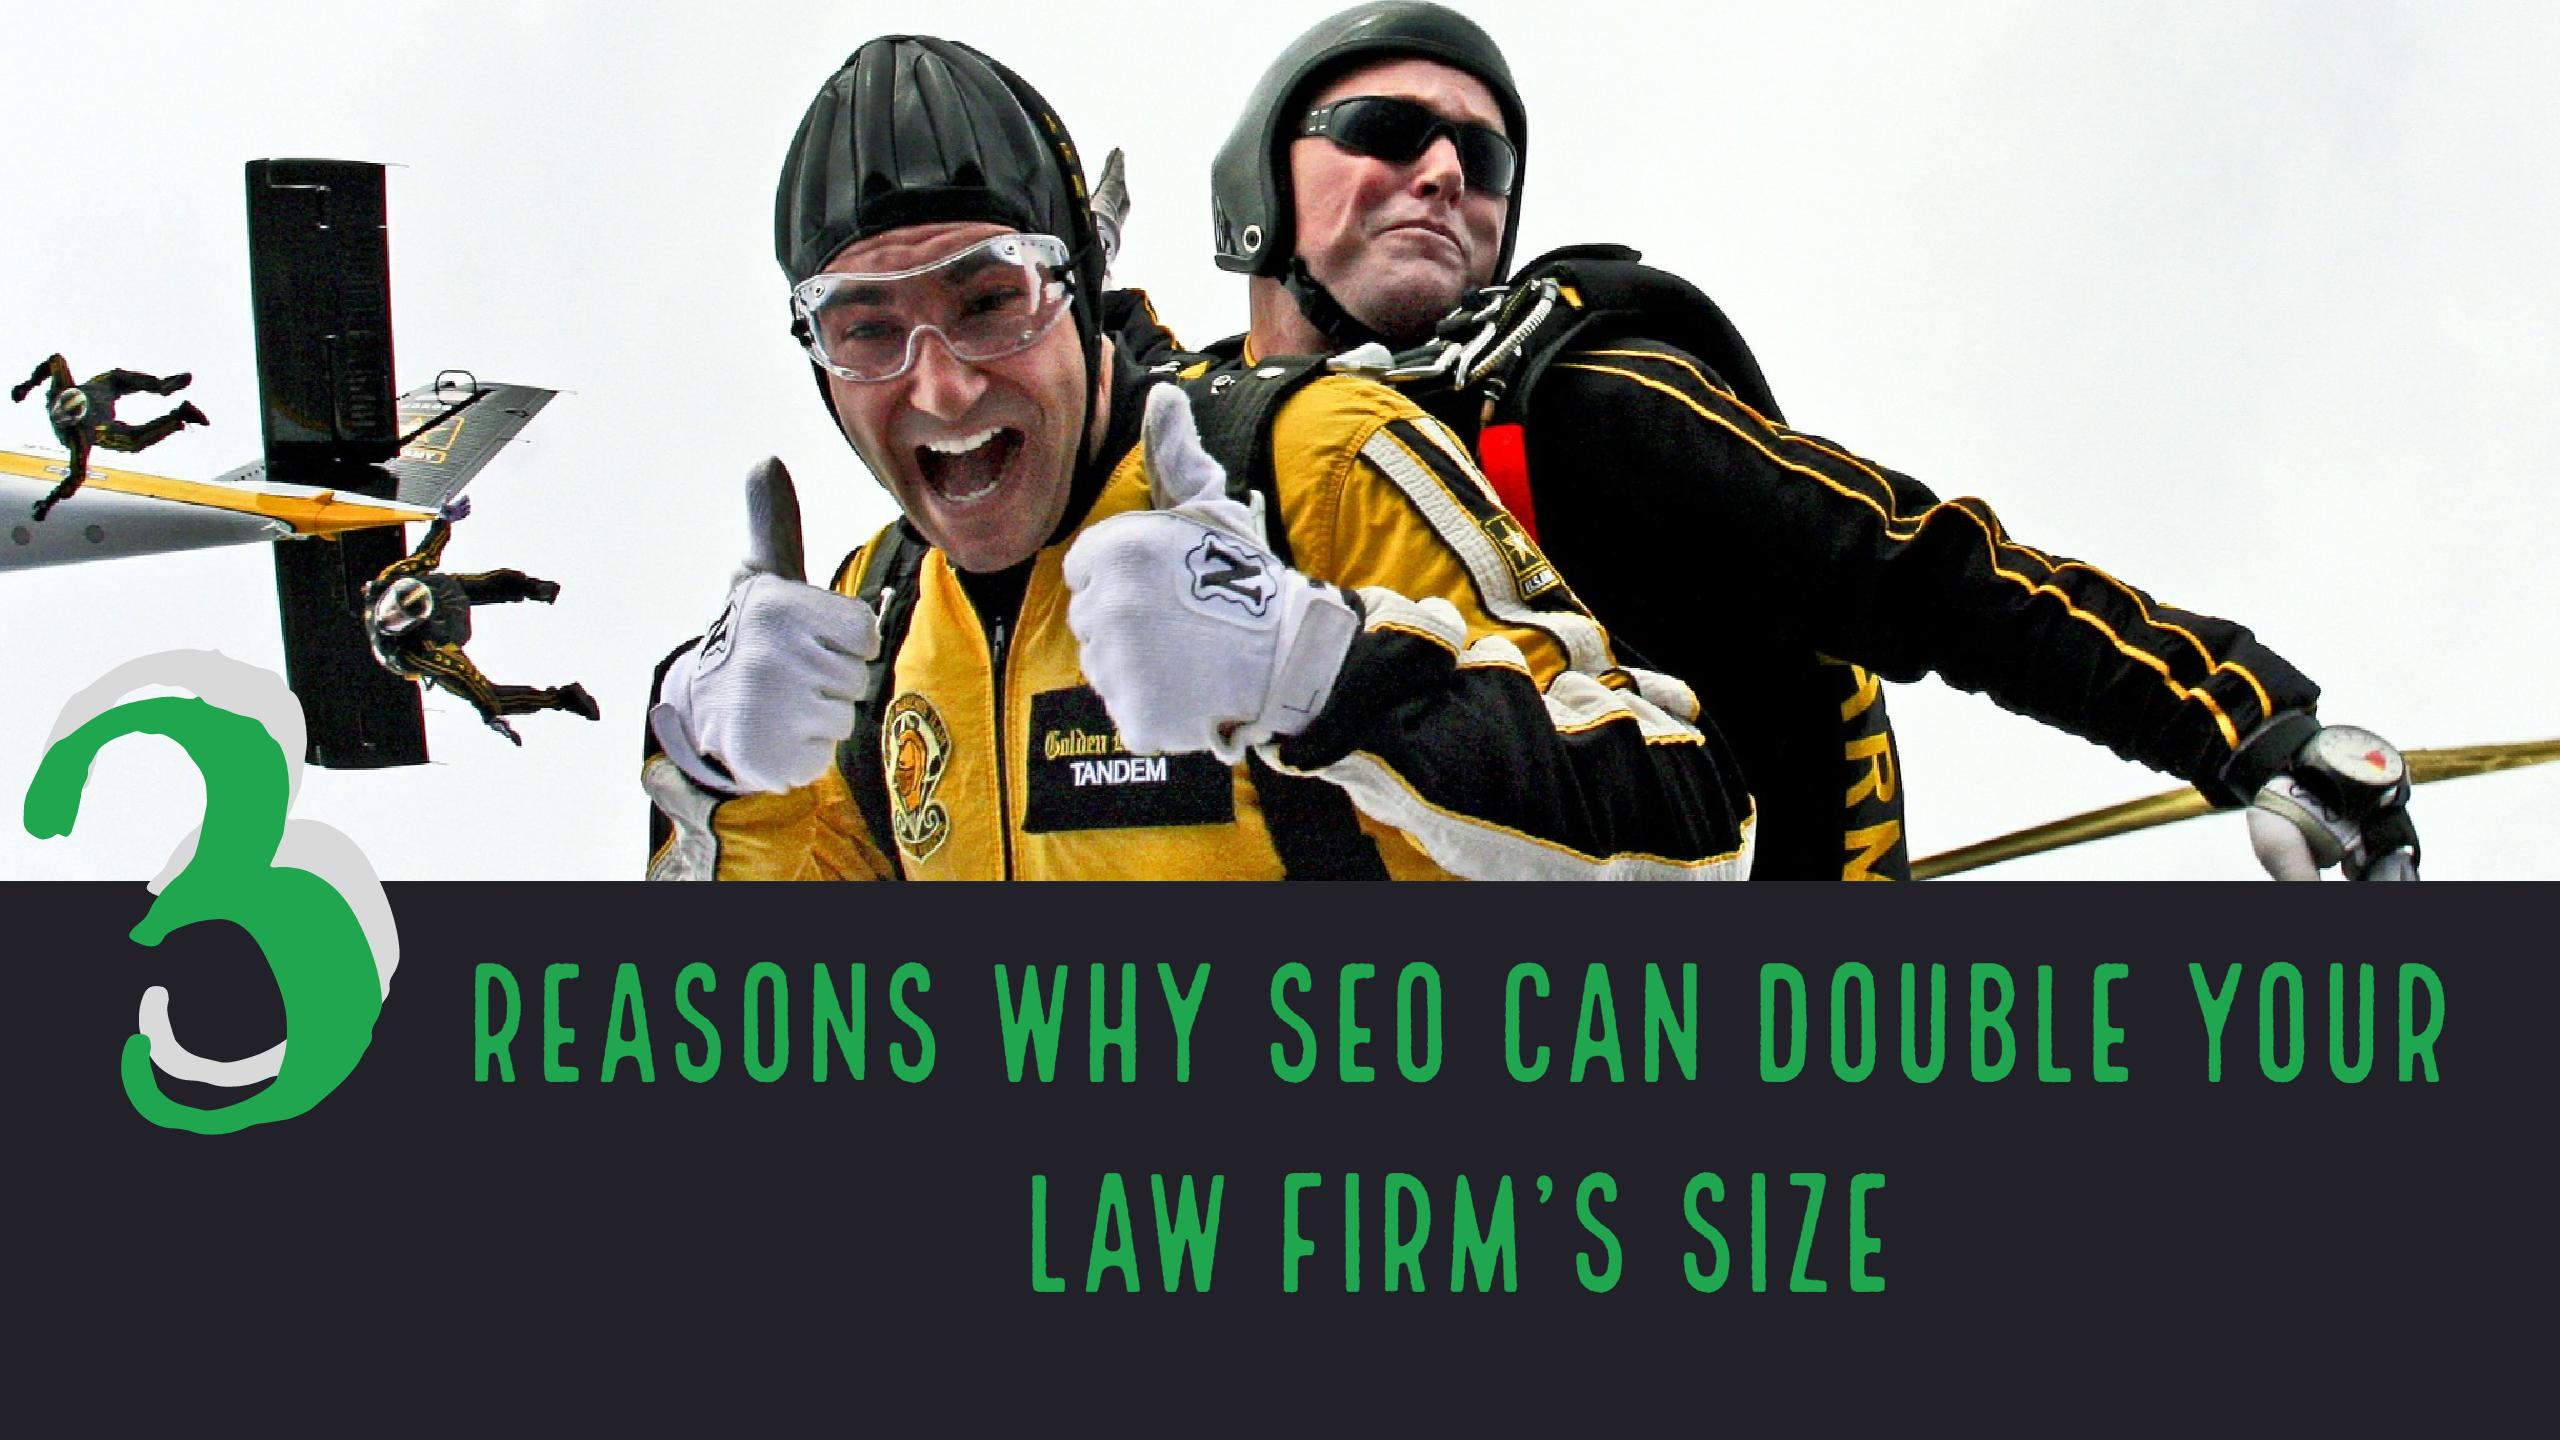 Reasons Why SEO can double your law firm's size